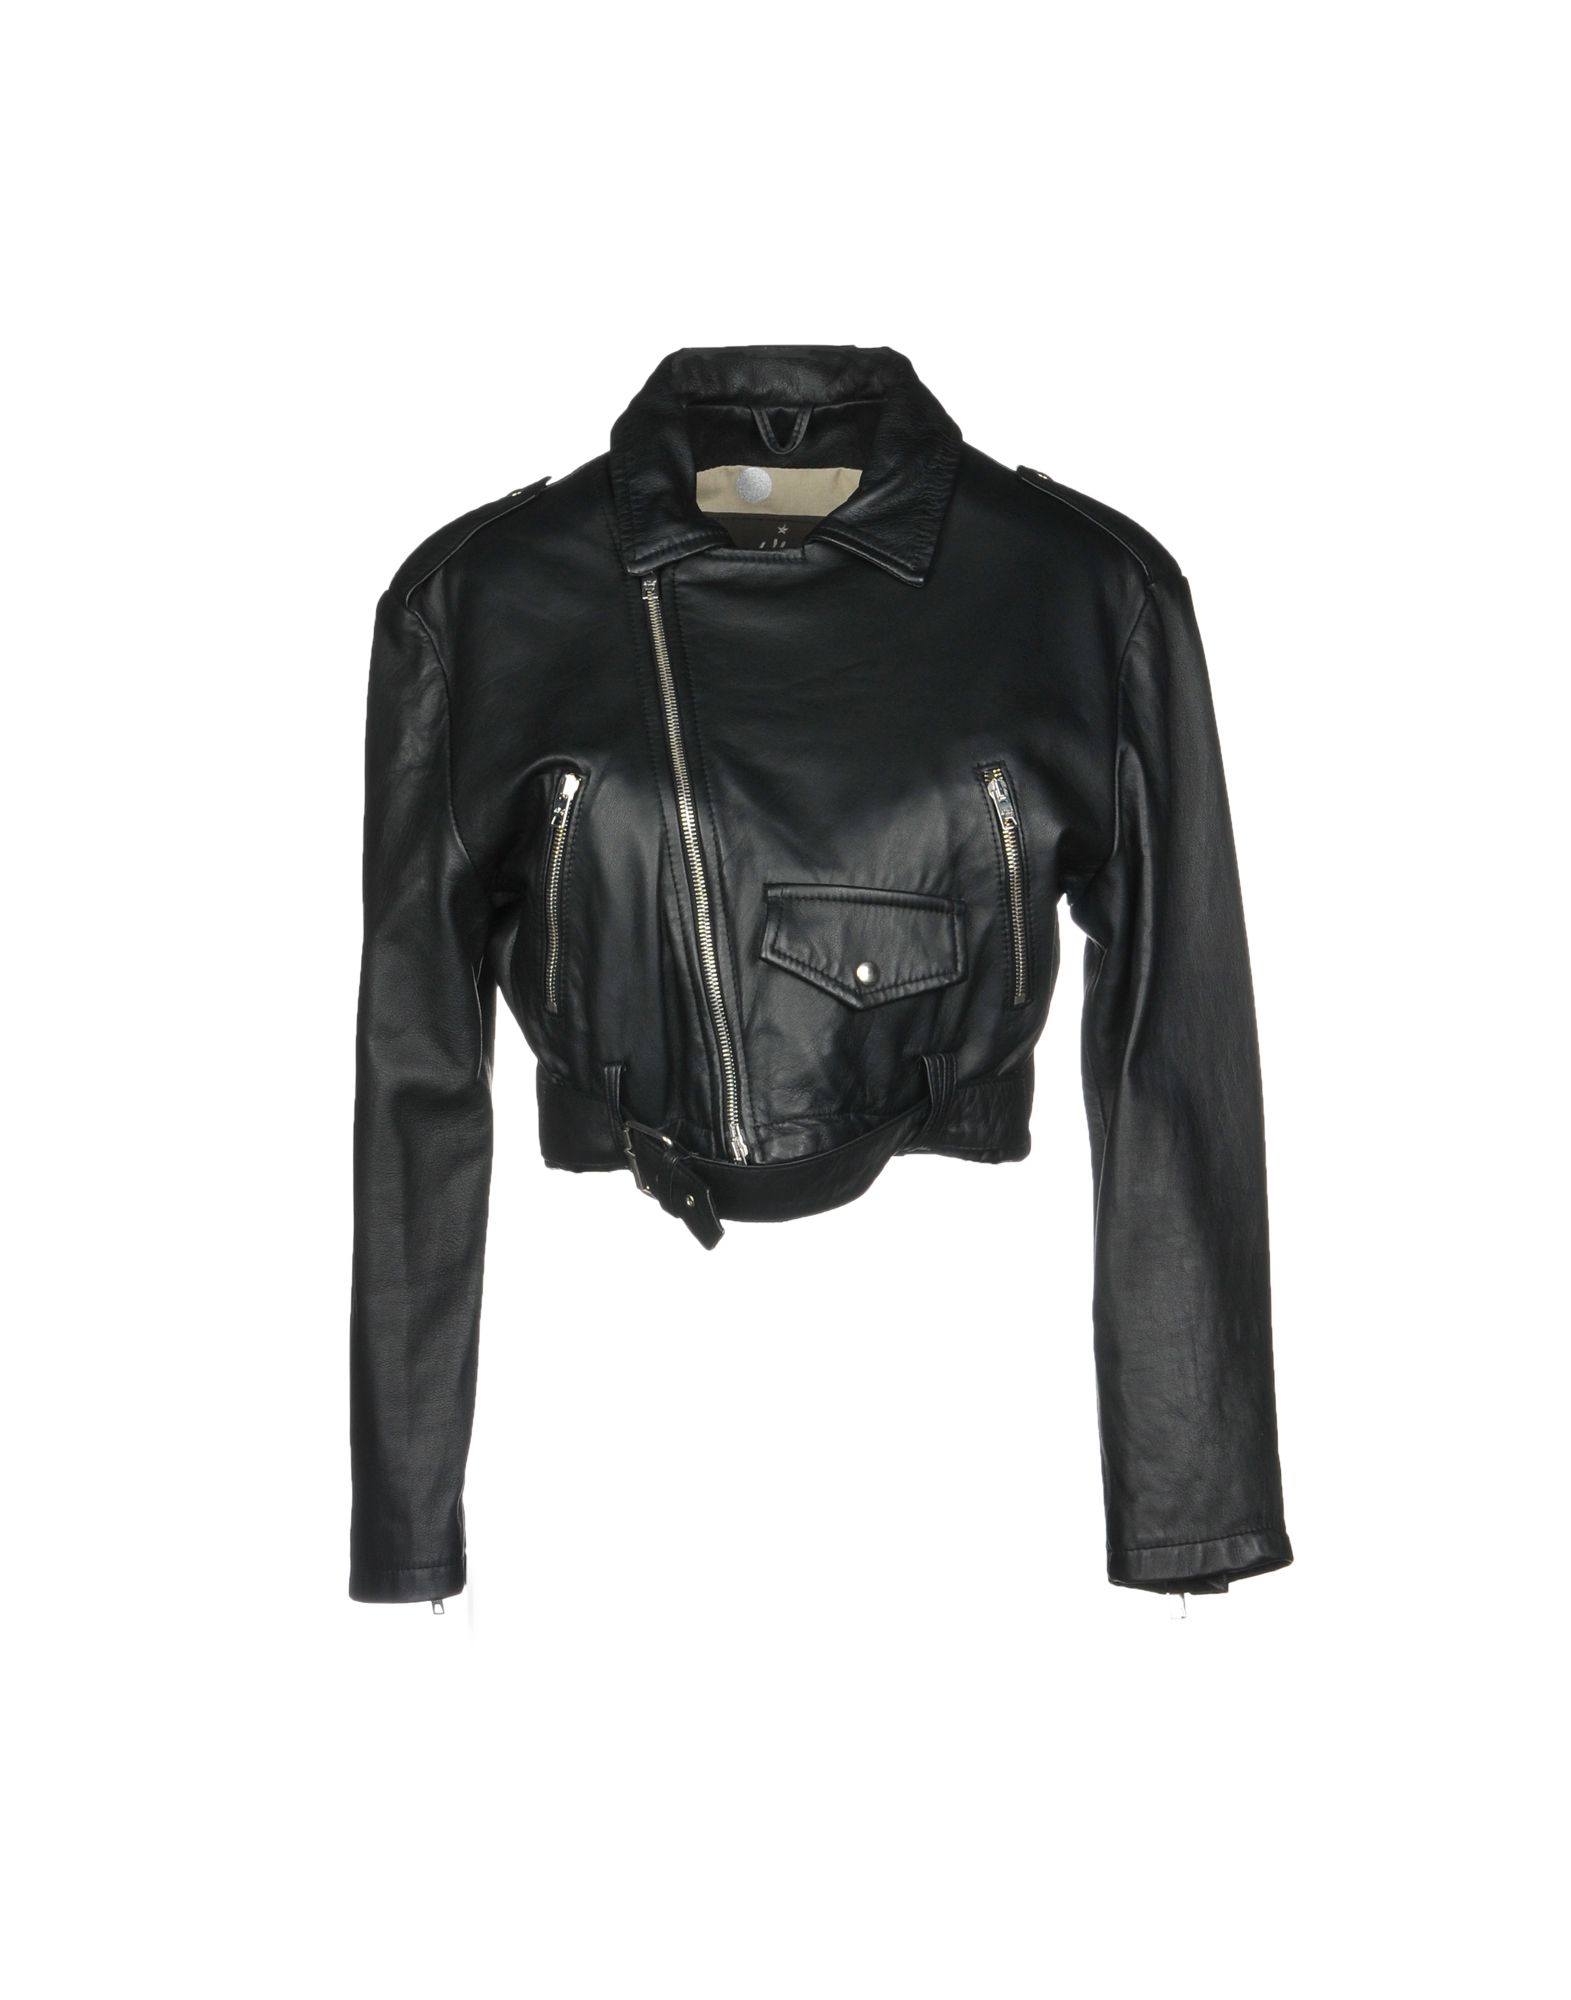 WLG BY GIORGIO BRATO Biker Jacket in Black